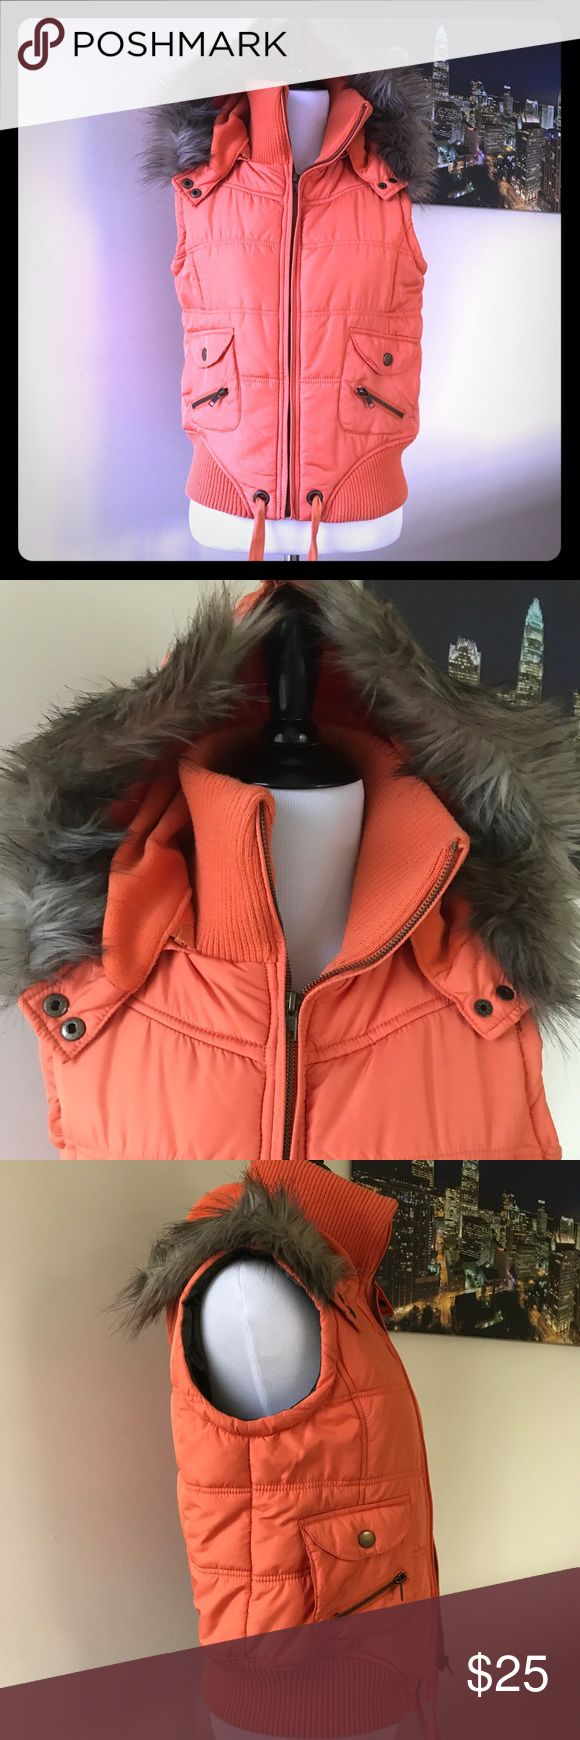 St. Bernard Orange Faux Fur Hooded Vest. St. Bernard Orange Faux Fur Hooded Vest. Purchased in Ireland. So soft and comfortable! US size 4 (see last picture of size chart)  In excellent condition- no holes, stains or damage noted.   FAST shipping! Same or next day shipping, always! Thanks for looking! St. Bernard Jackets & Coats Vests